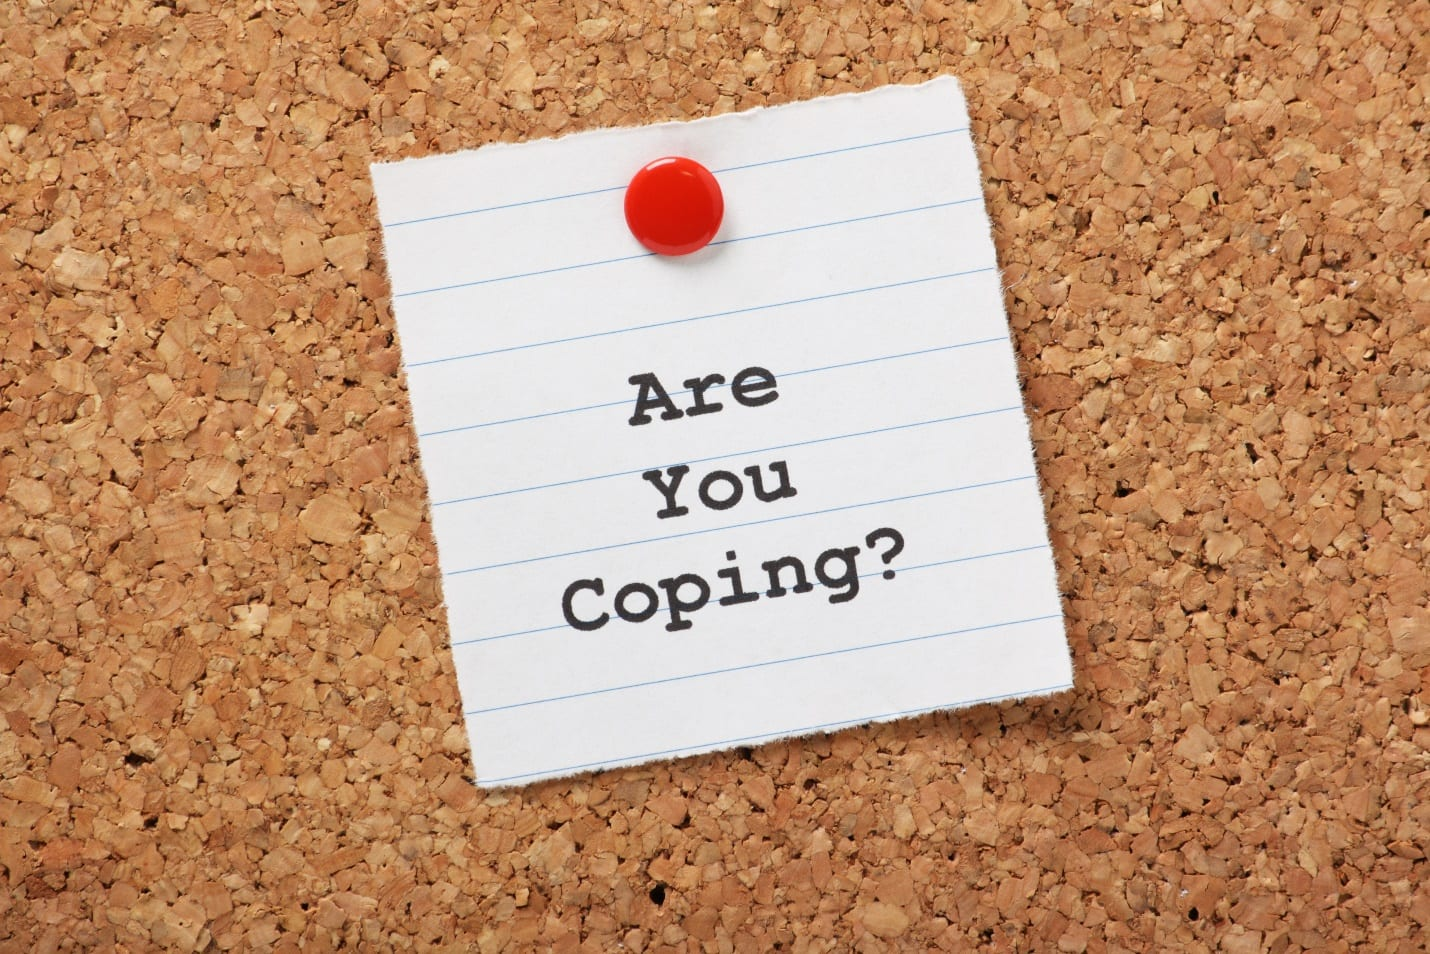 Are You Coping? on a paper note pinned to a cork notice board.